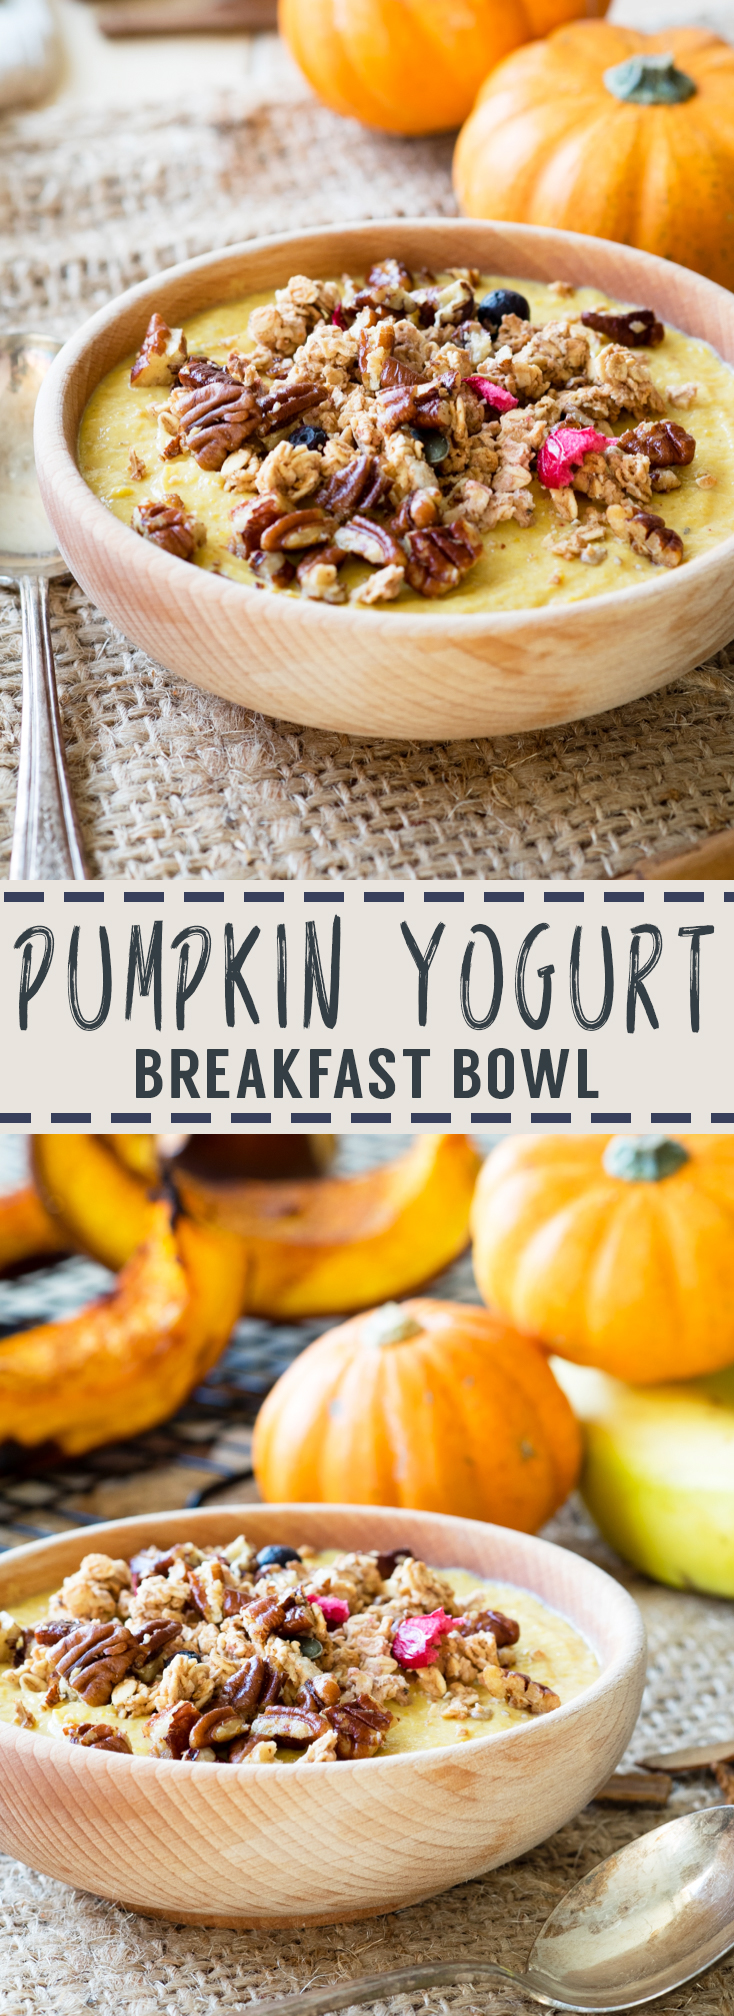 Pumpkin Greek Yogurt Breakfast Bowl | The Worktop